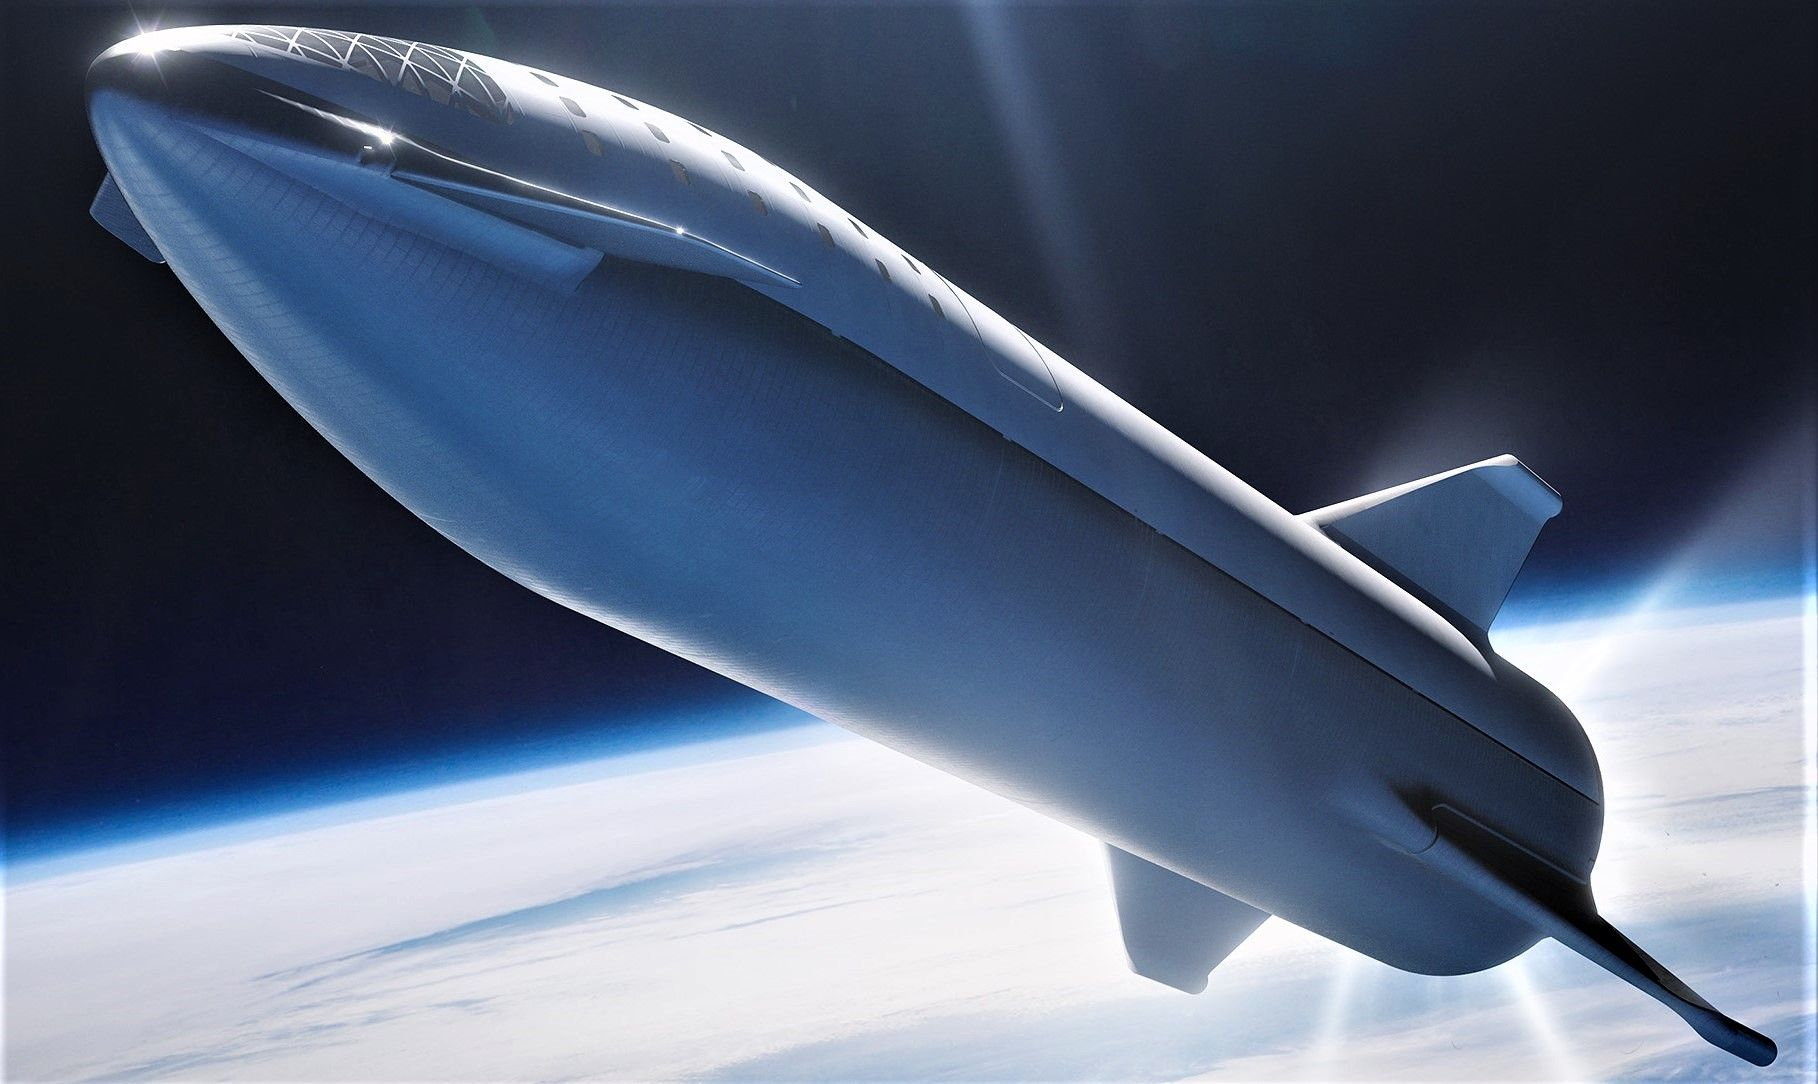 Spacex S Bfr Rocket And Spaceship Look More Real Than Ever In New 4k Renders Spacex Starship Spacex Falcon Heavy